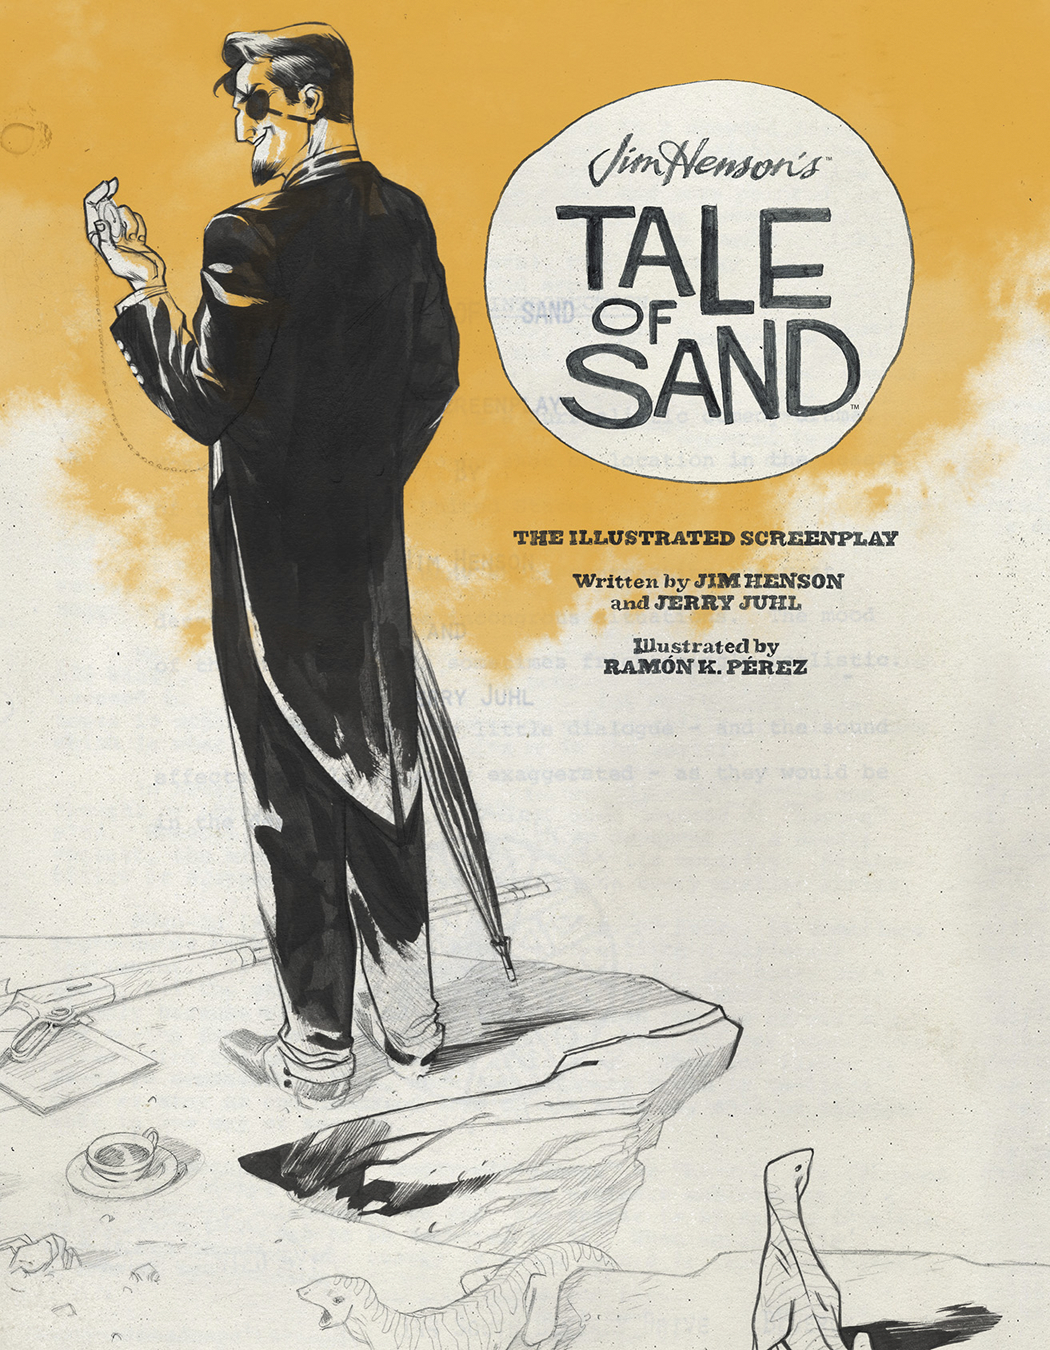 JIM HENSONS TALE OF SAND ILLUSTRATED SCREENPLAY HC